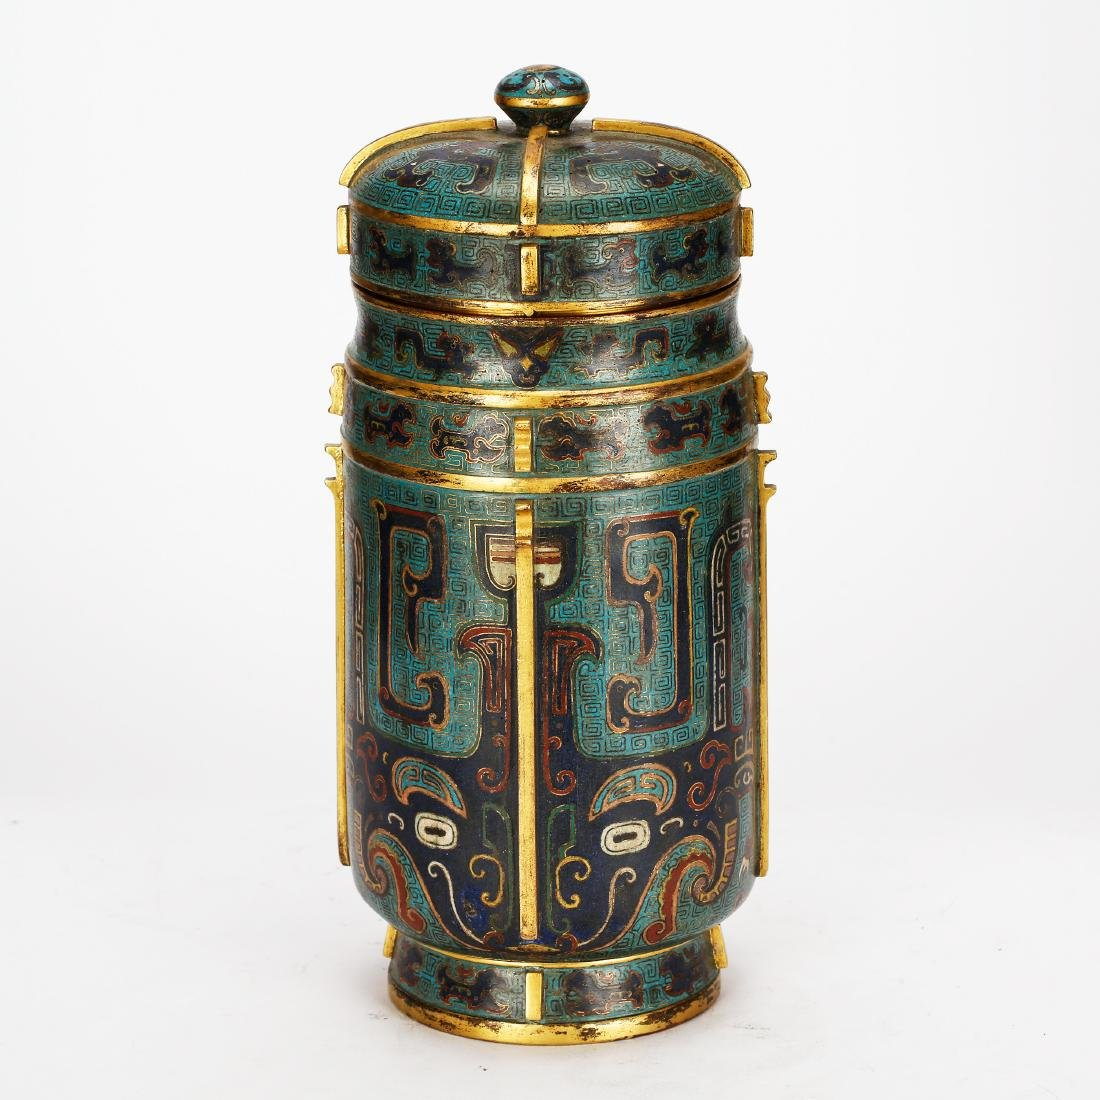 CHINESE CLOISONNE ENAMEL COVER VASE, QING DYNASTY